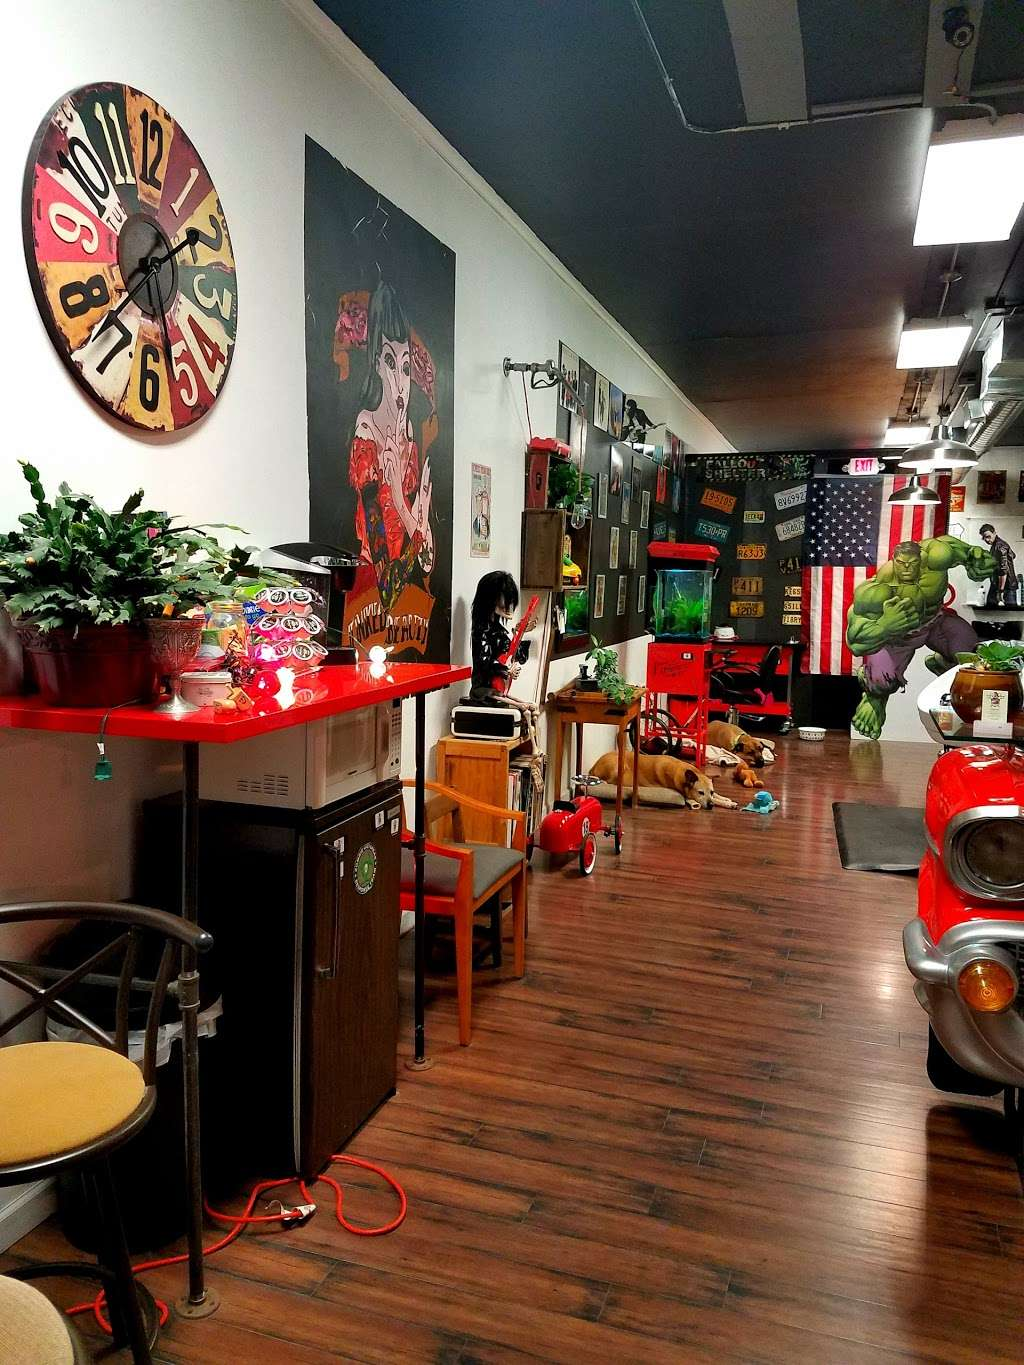 The Garage Hair Studio - hair care  | Photo 5 of 6 | Address: 1033 River Rd, New Milford, NJ 07646, USA | Phone: (201) 530-7440